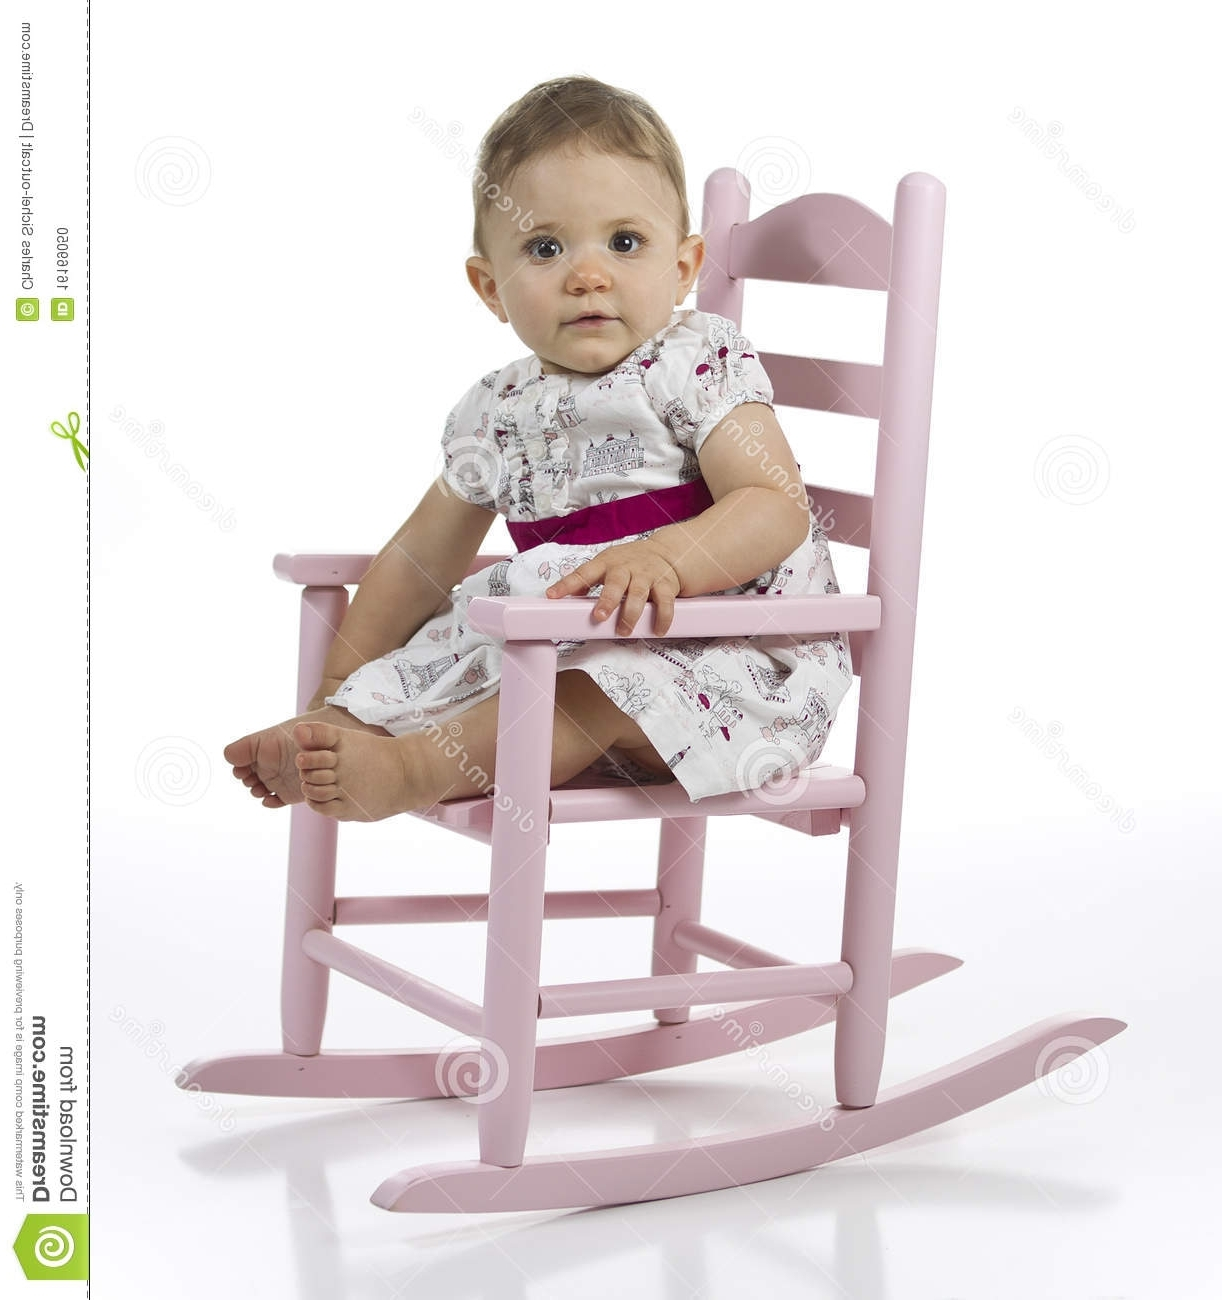 Rocking Chairs For Babies Inside Most Current Wonderful Baby Rocking Chair For Your Outdoor Furniture With (View 11 of 15)